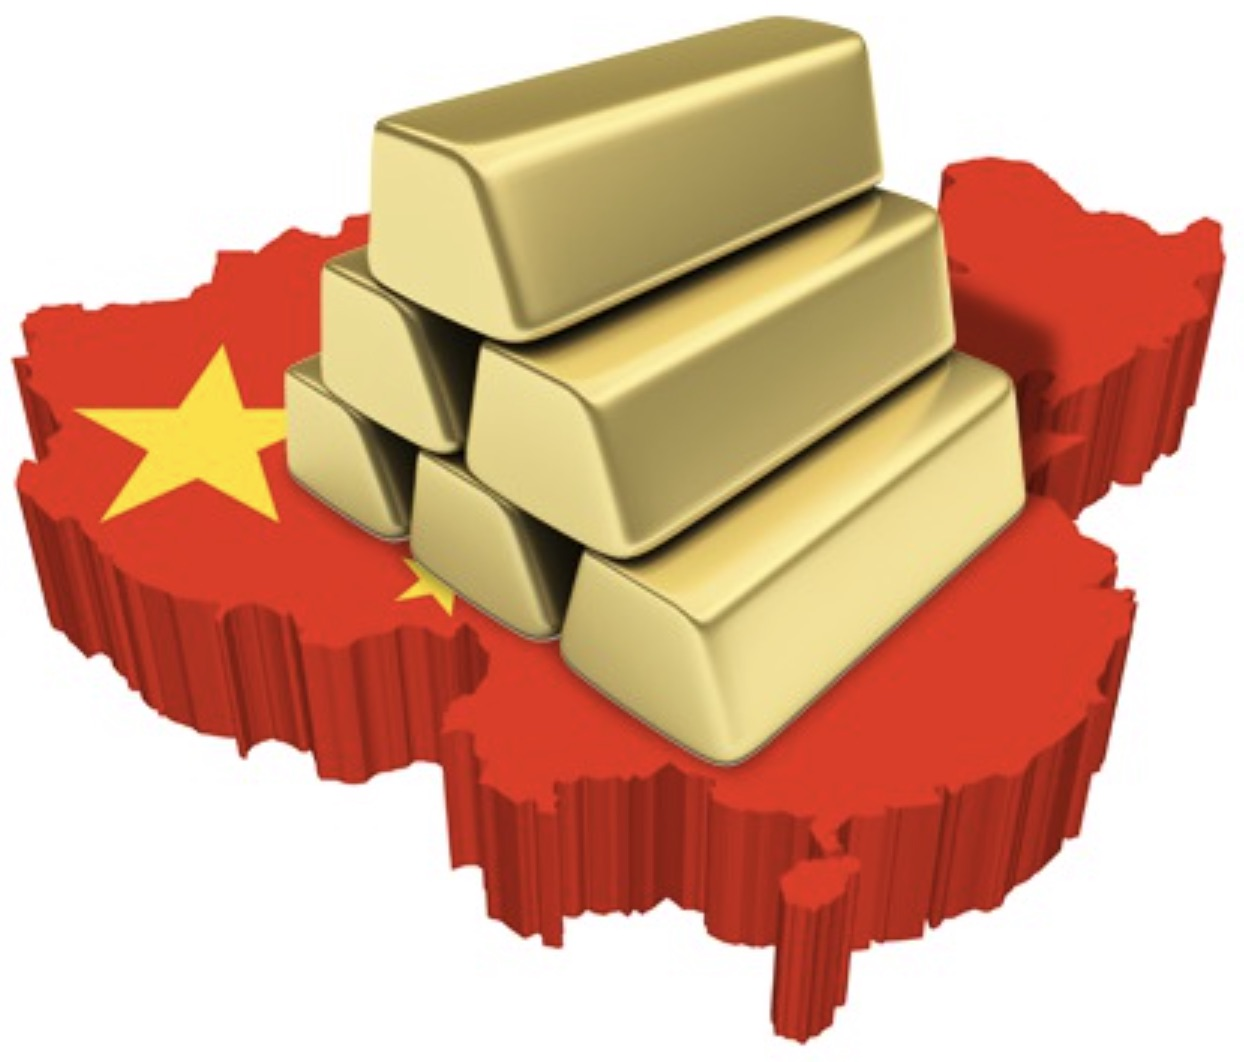 King World News - China's Bold Plan To Reshape The World's Monetary System With Gold & Blockchain